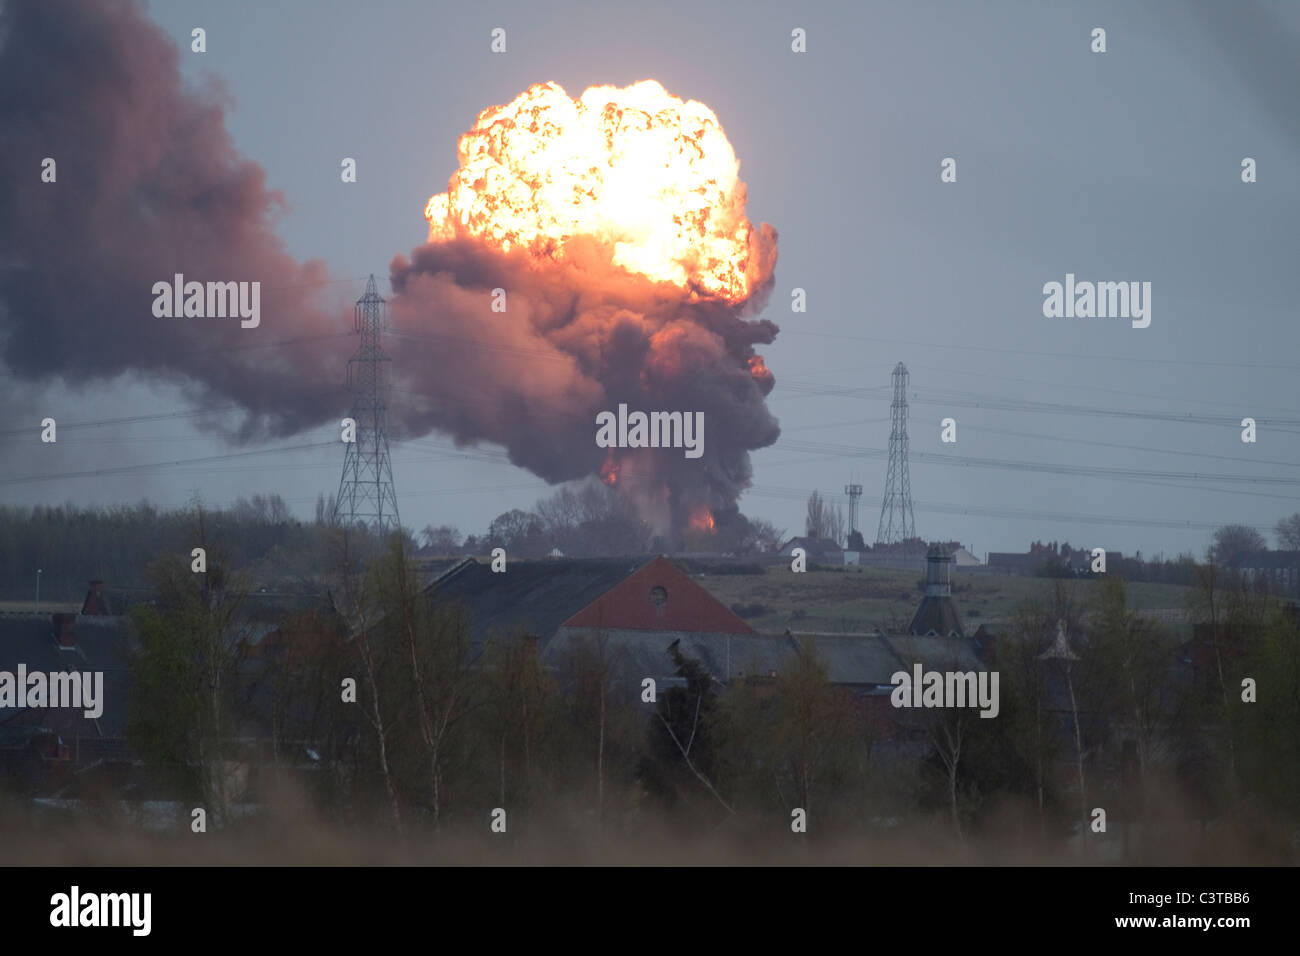 Gas Explosion - Stock Image